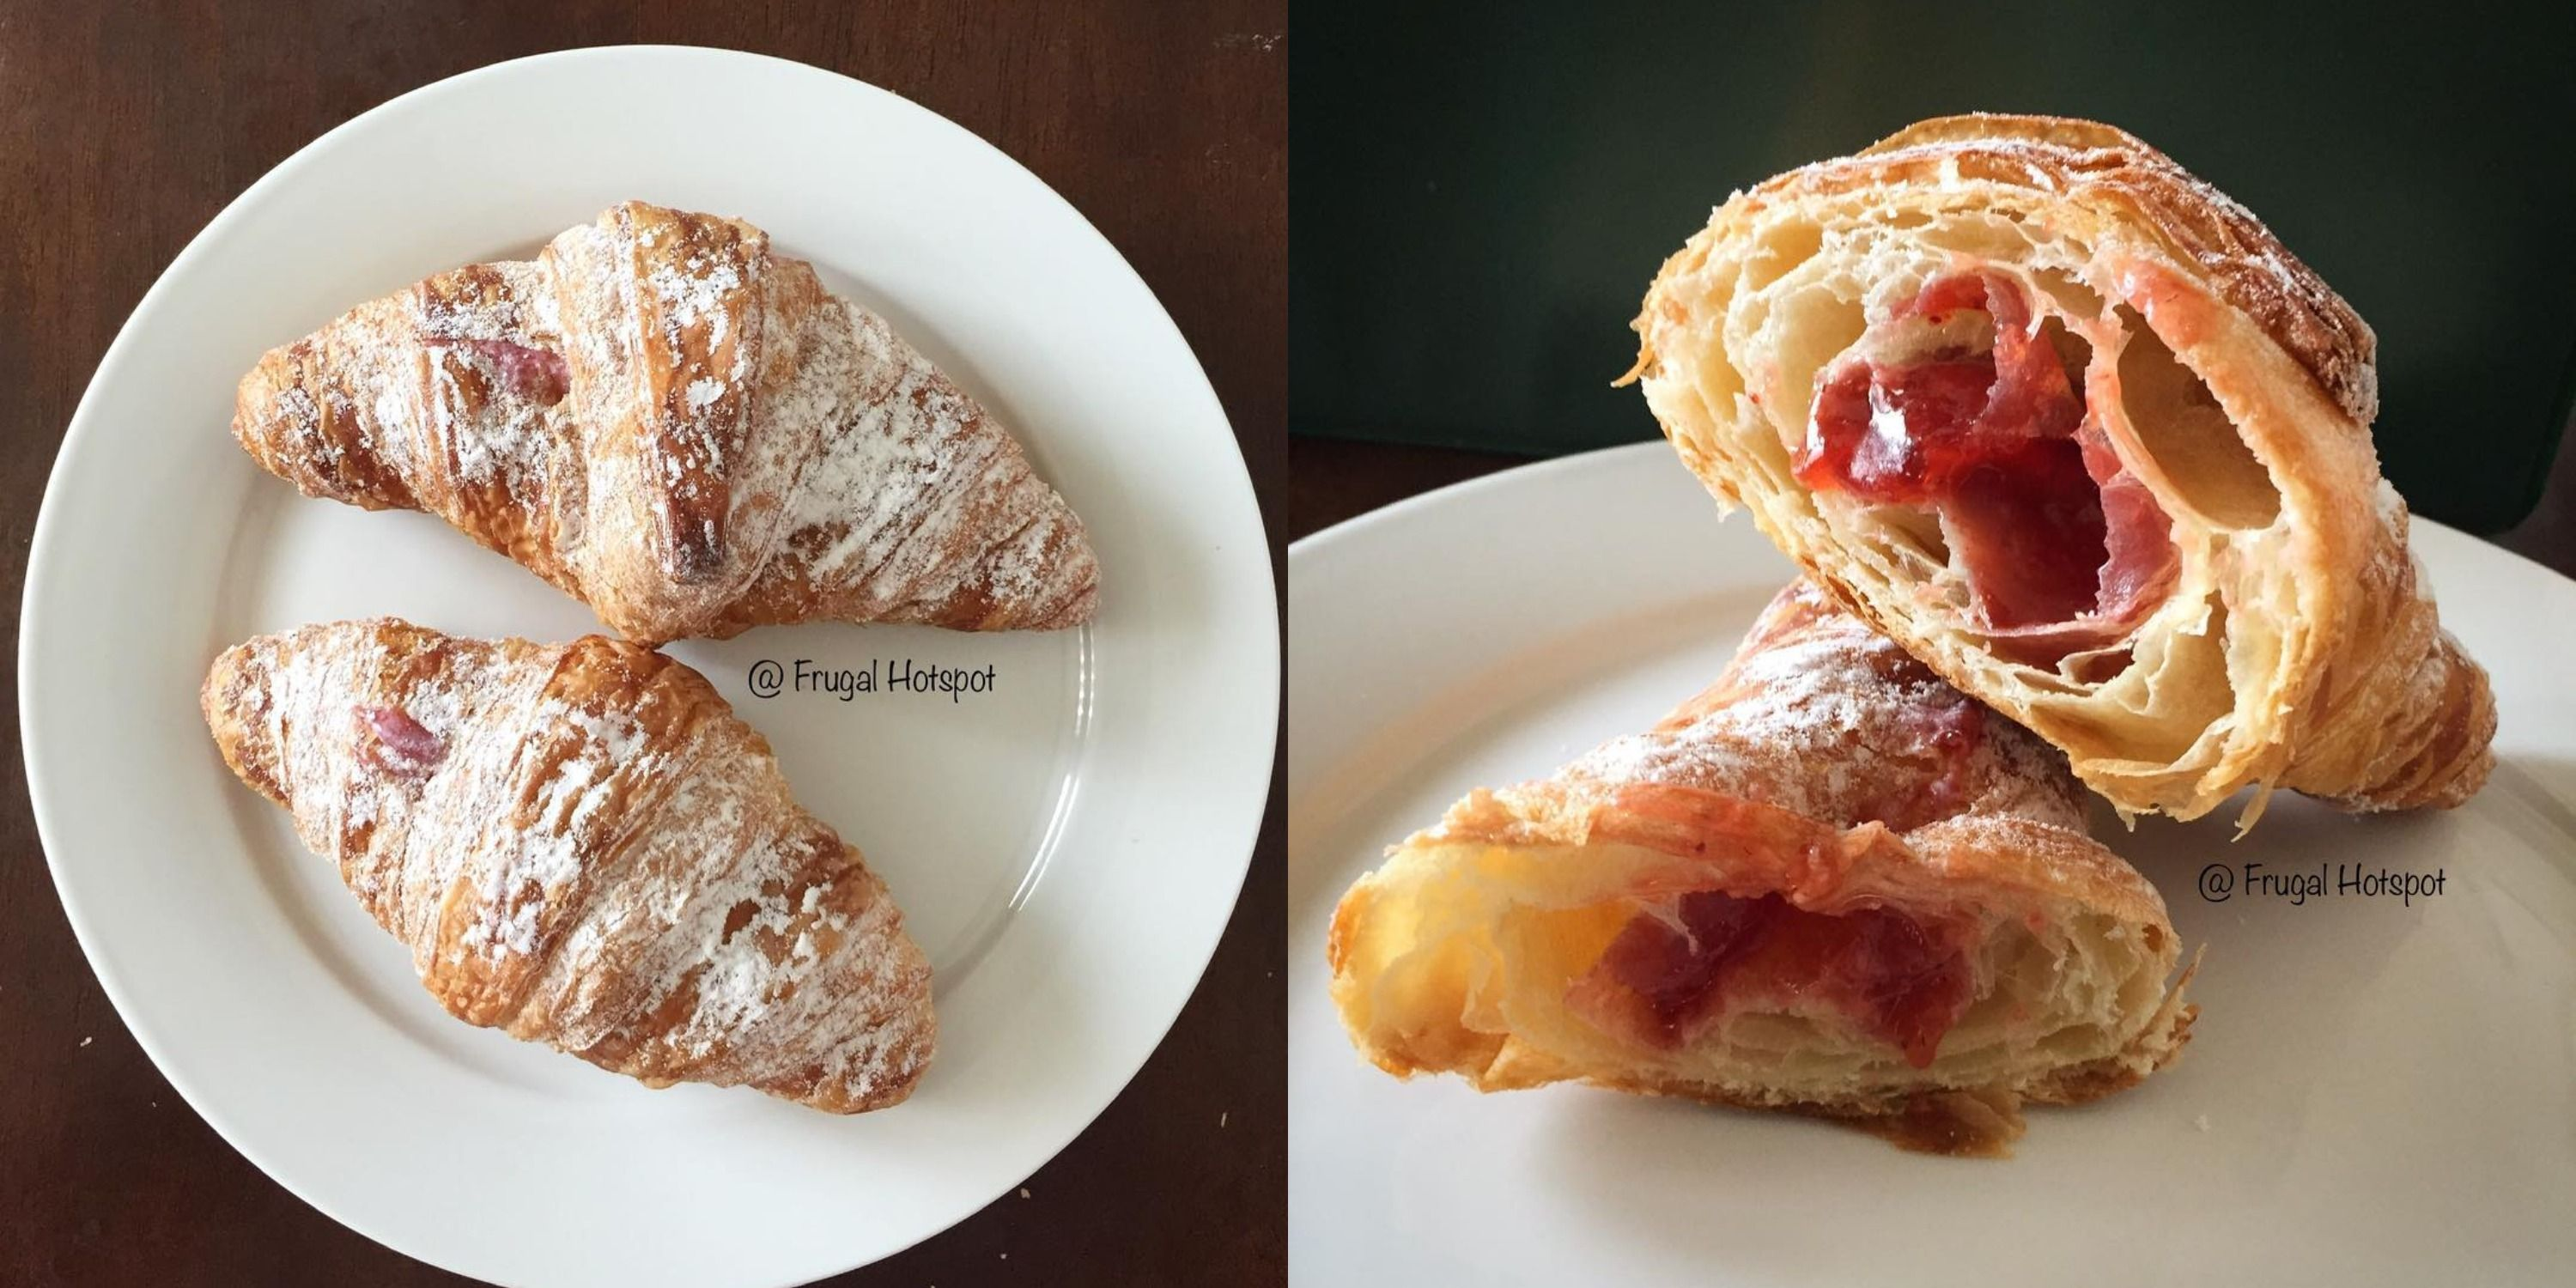 Costco's Strawberry-Filled Croissants Are Beloved By Fans